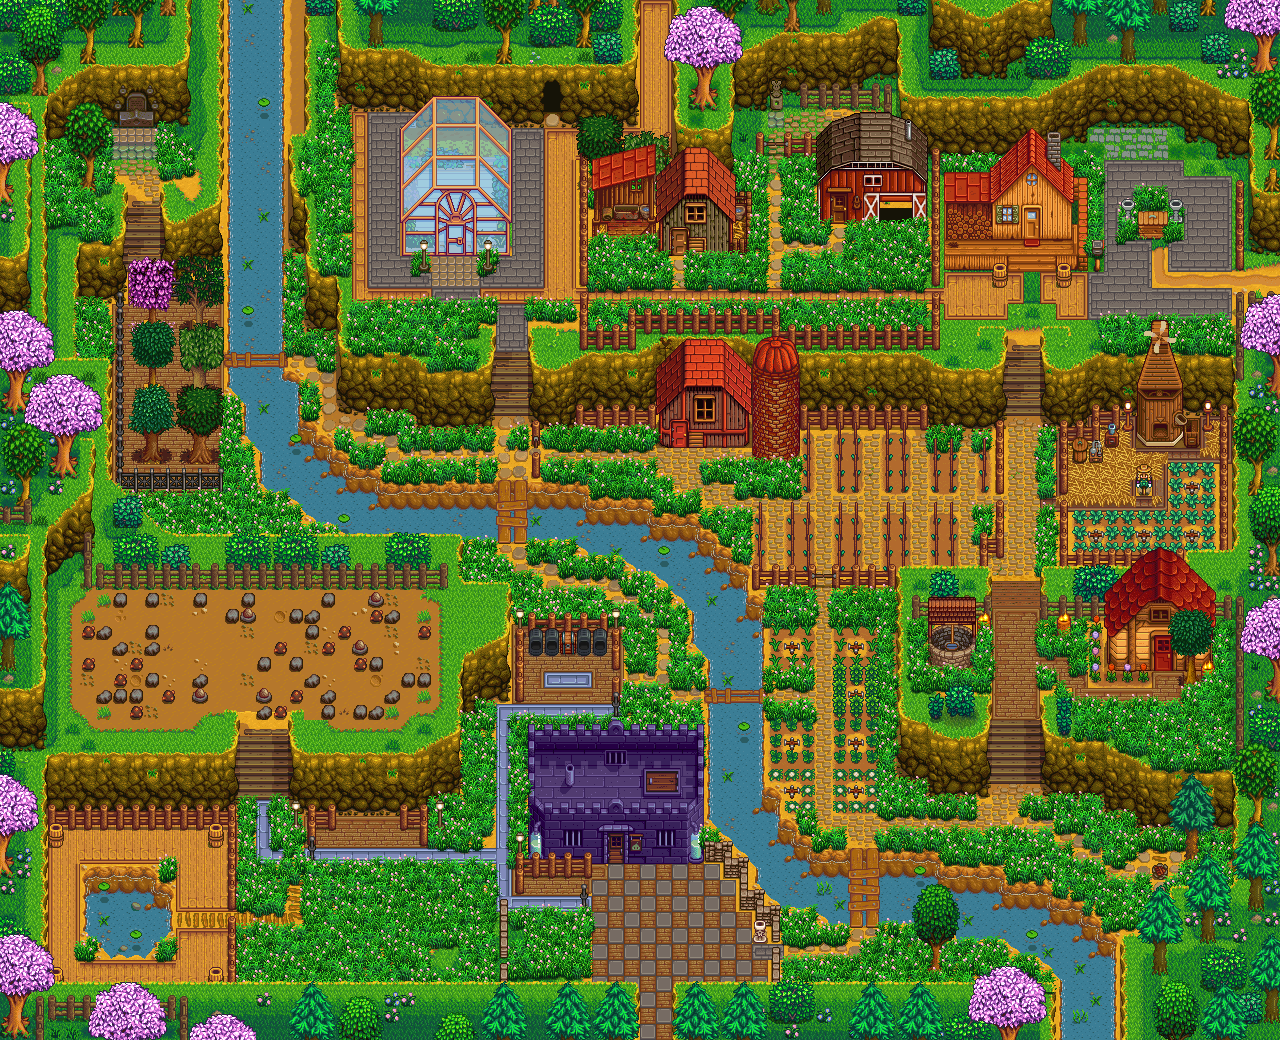 Hill Top Farm Spring Png 1280 1040 Stardew Valley Stardew Valley Farms Stardew Valley Layout